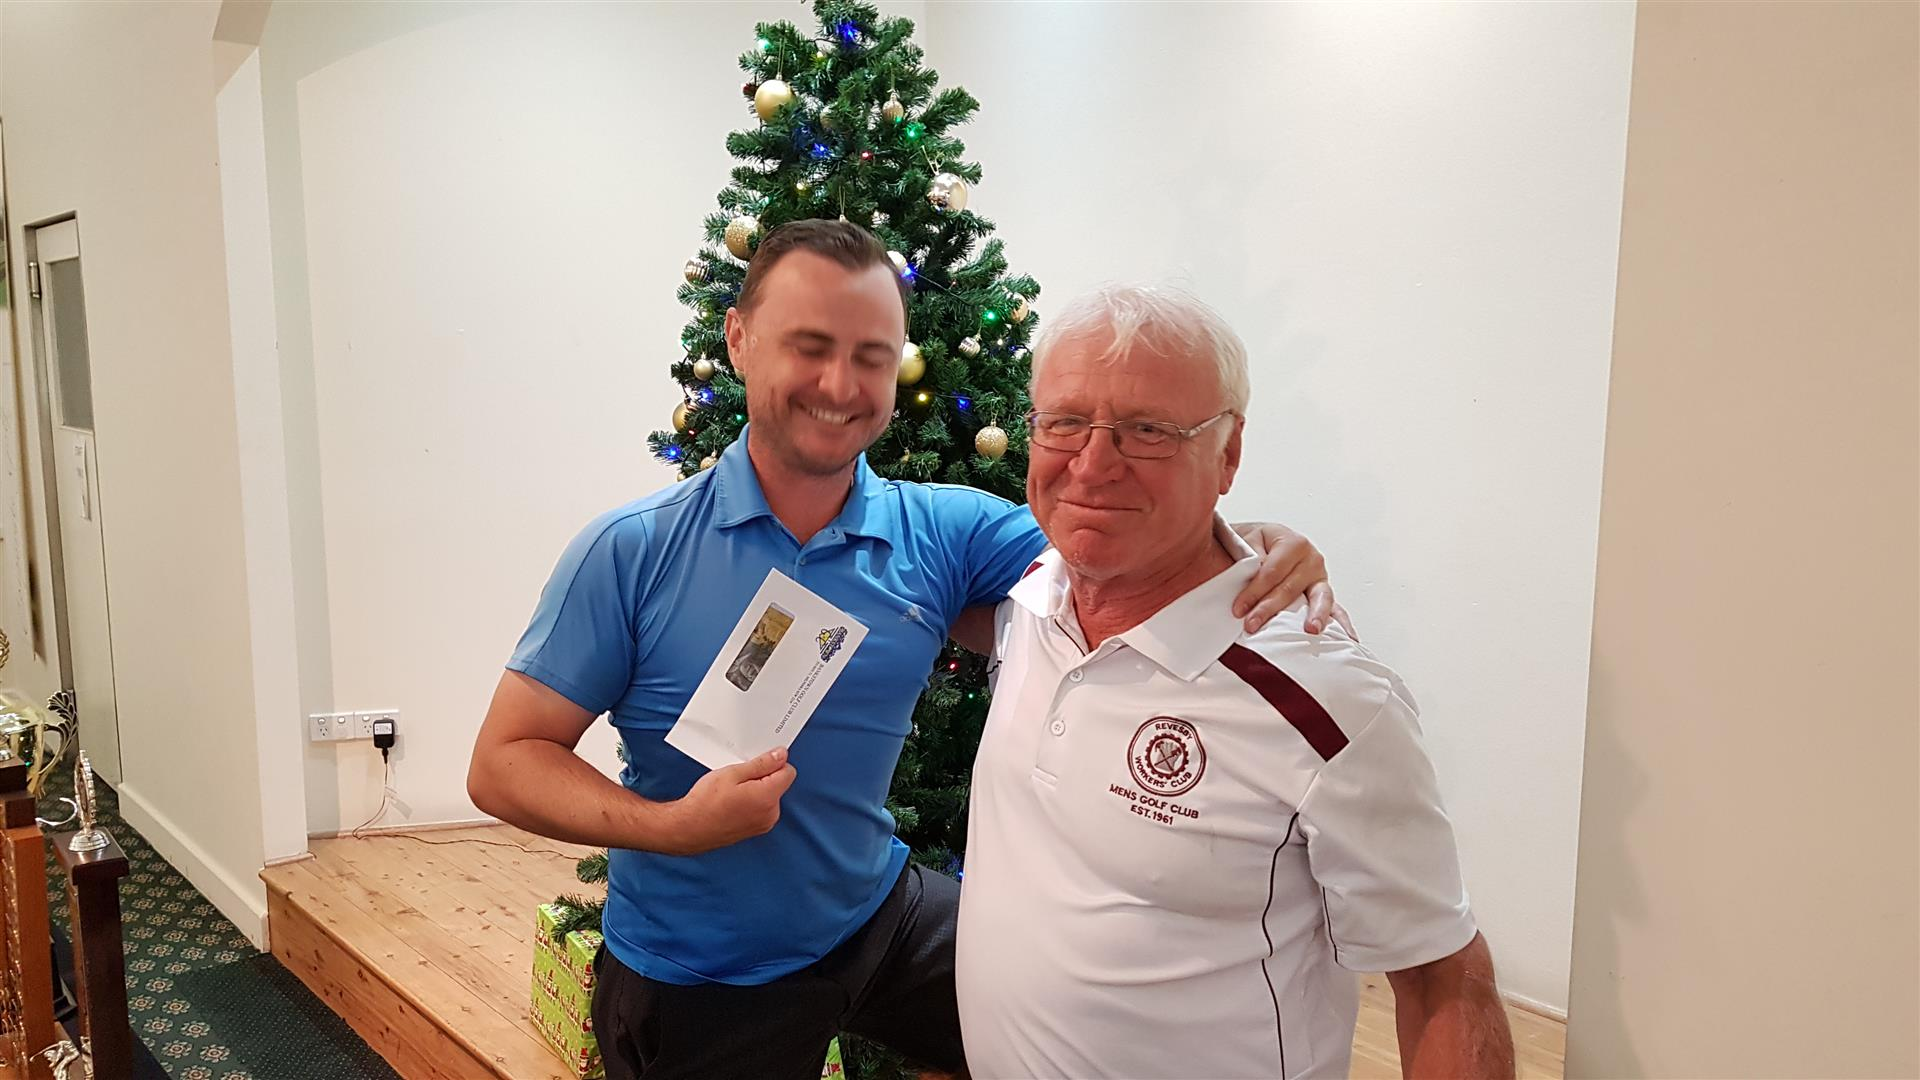 Third place went to the new slugger and plugger combination of Adam  Giltinan and Paul Dawkins with a fine score of 61½ nett (72 gross).